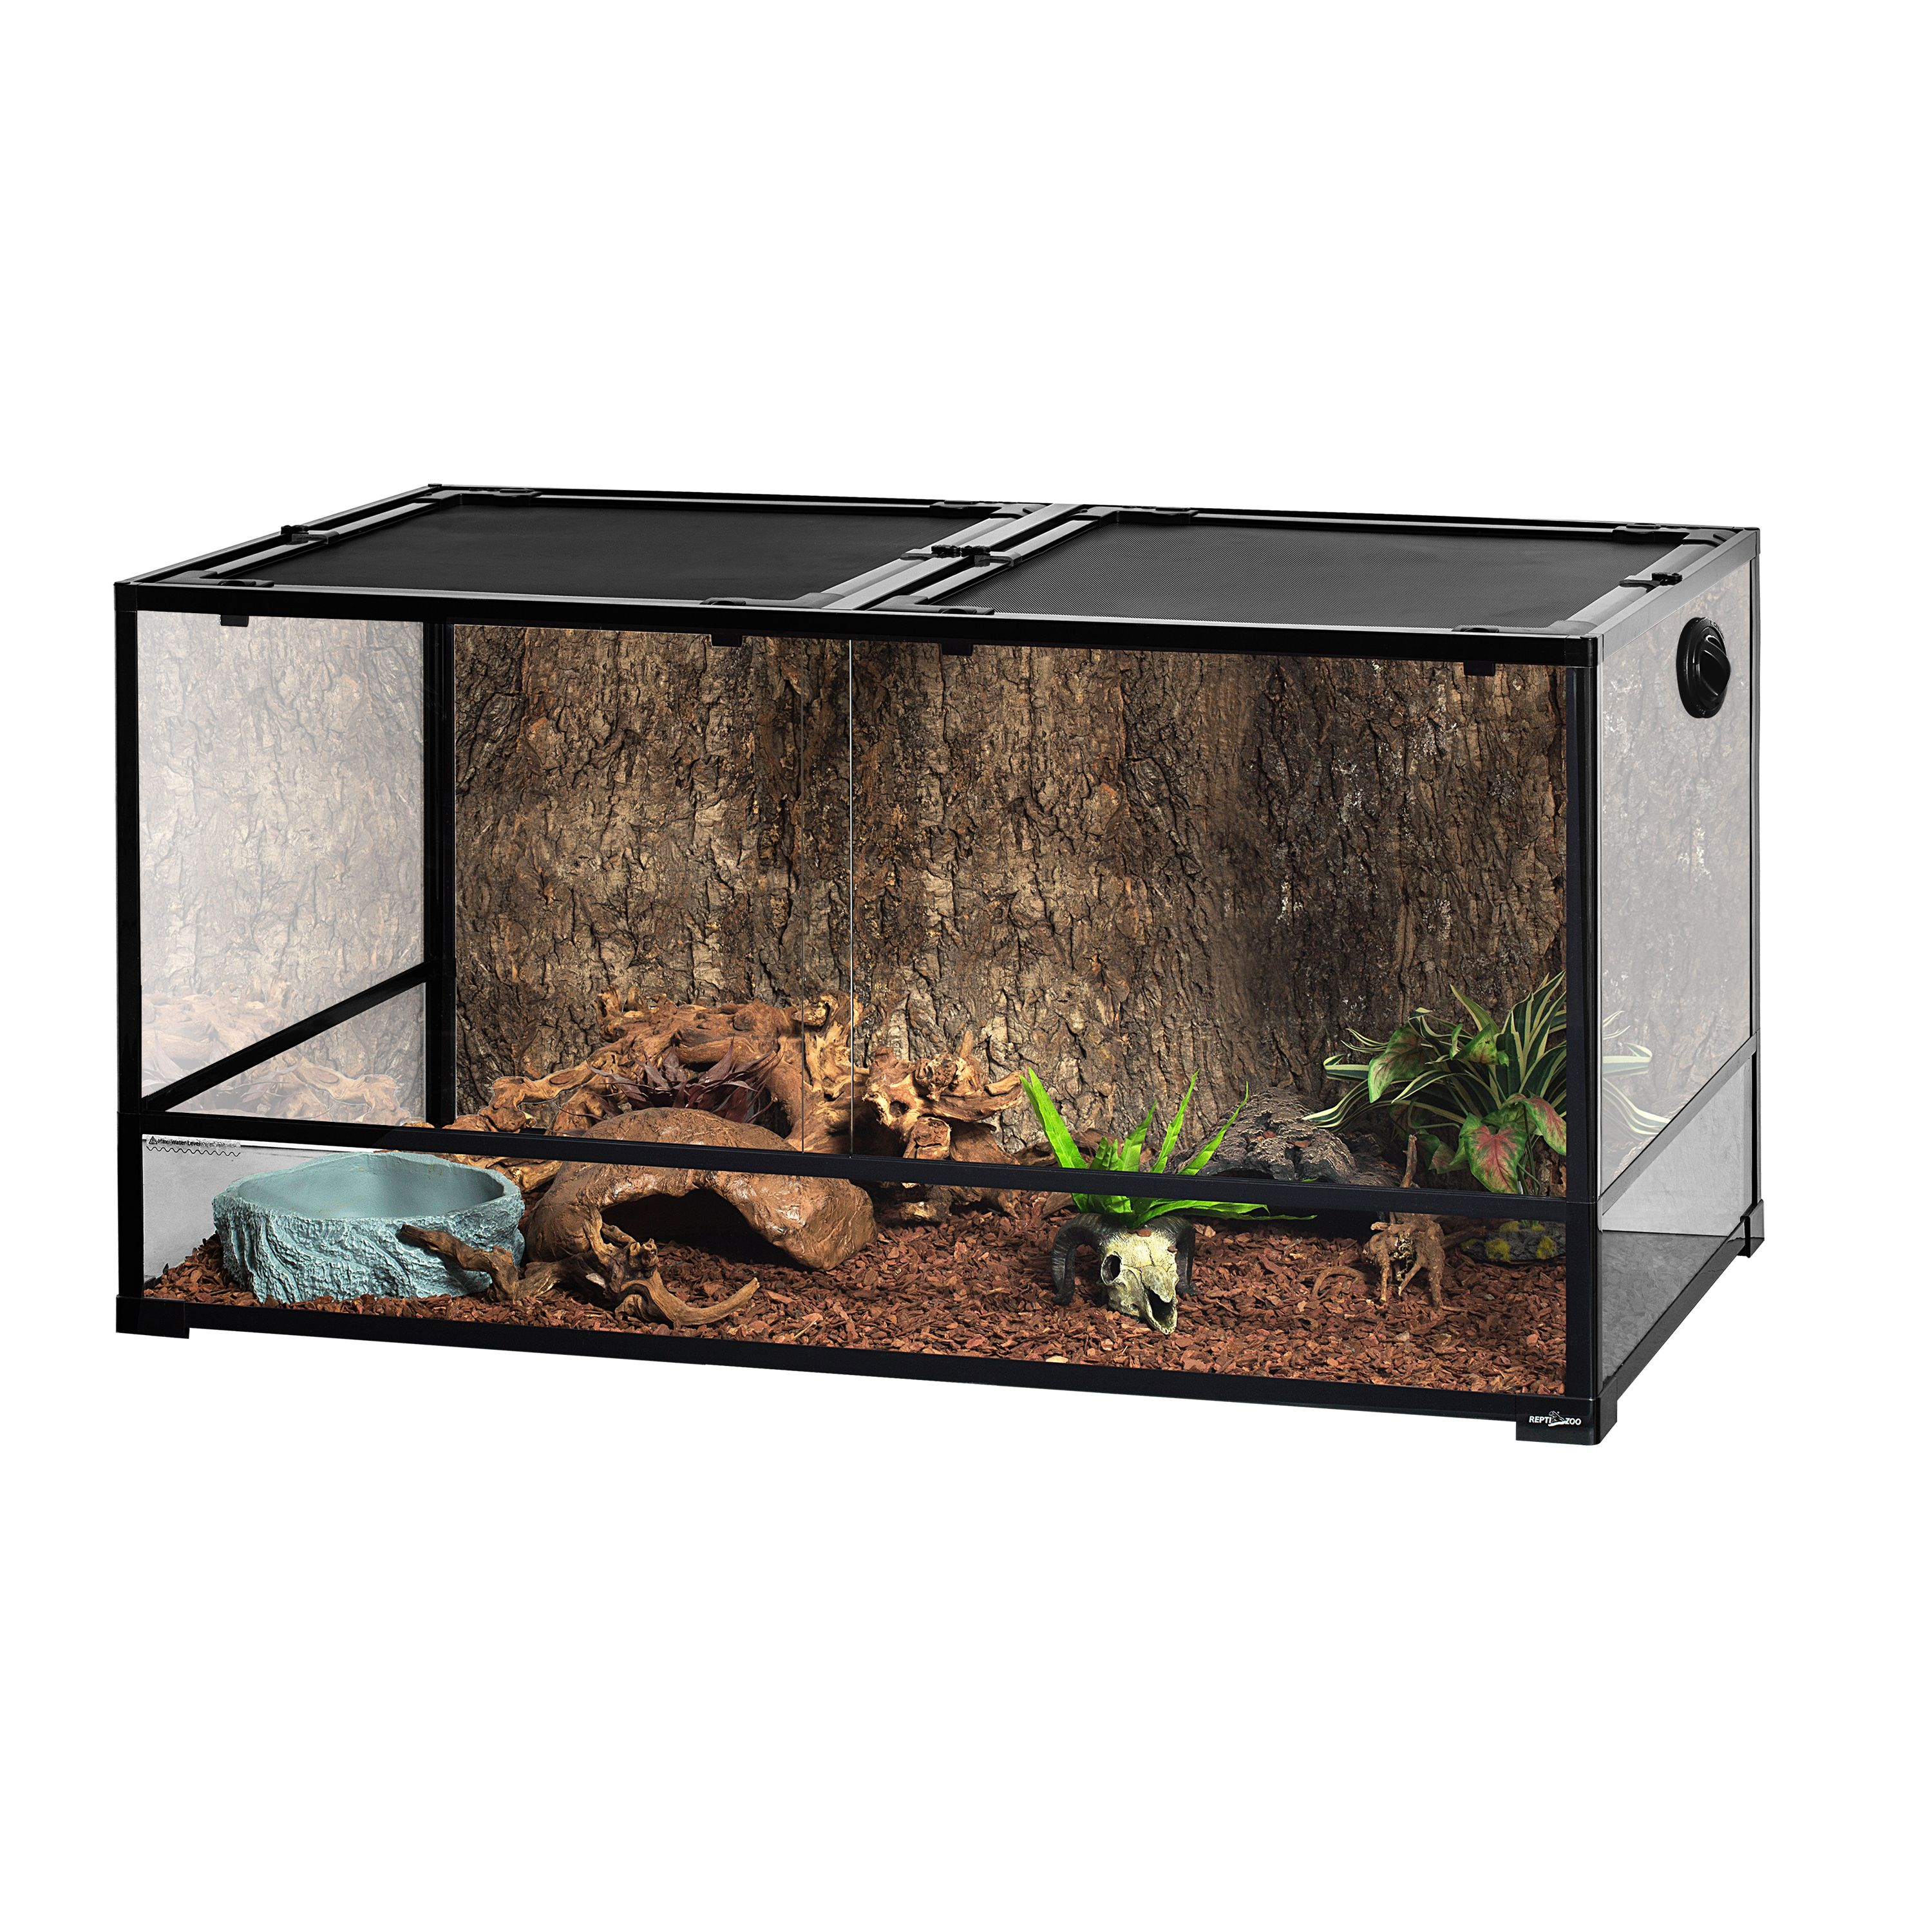 Reptizoo Large Reptile Glass Terrarium Tall Extra Long 48 L X 24 D X 24 H Reptile Terrarium Tank 120 Gallon With Sliding Door And Screen Ventilation Full View Reptile Enclosure